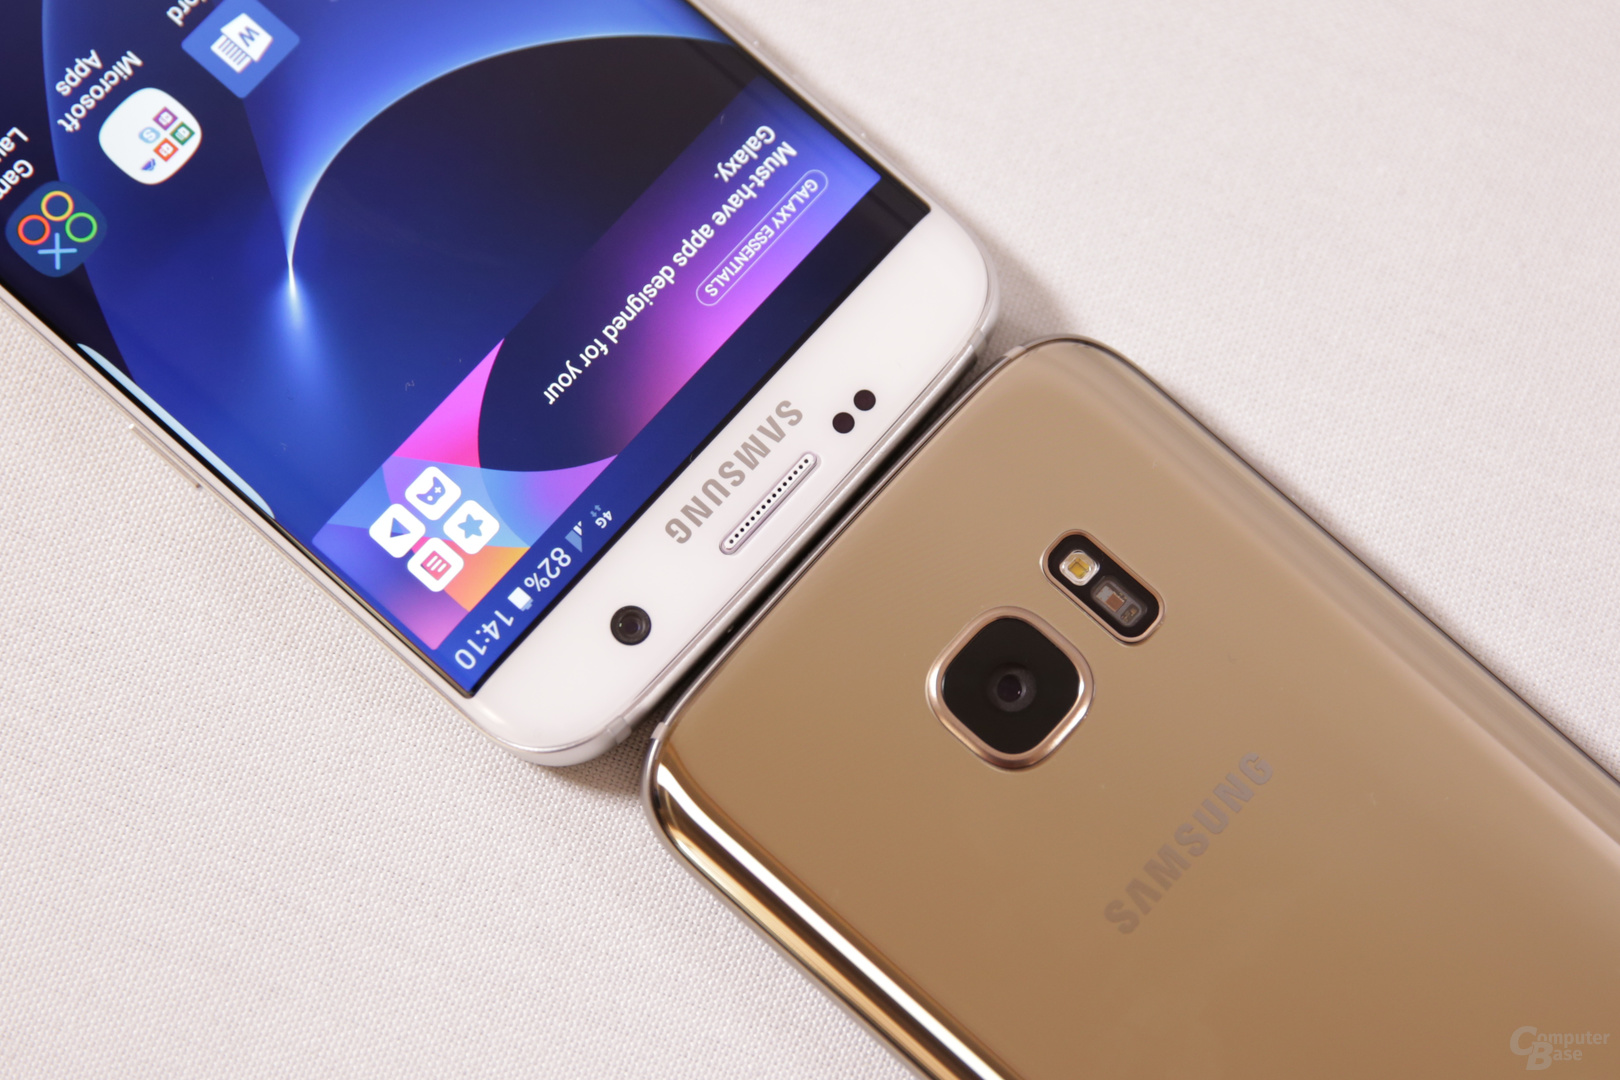 Galaxy S7 edge und Galaxy S7